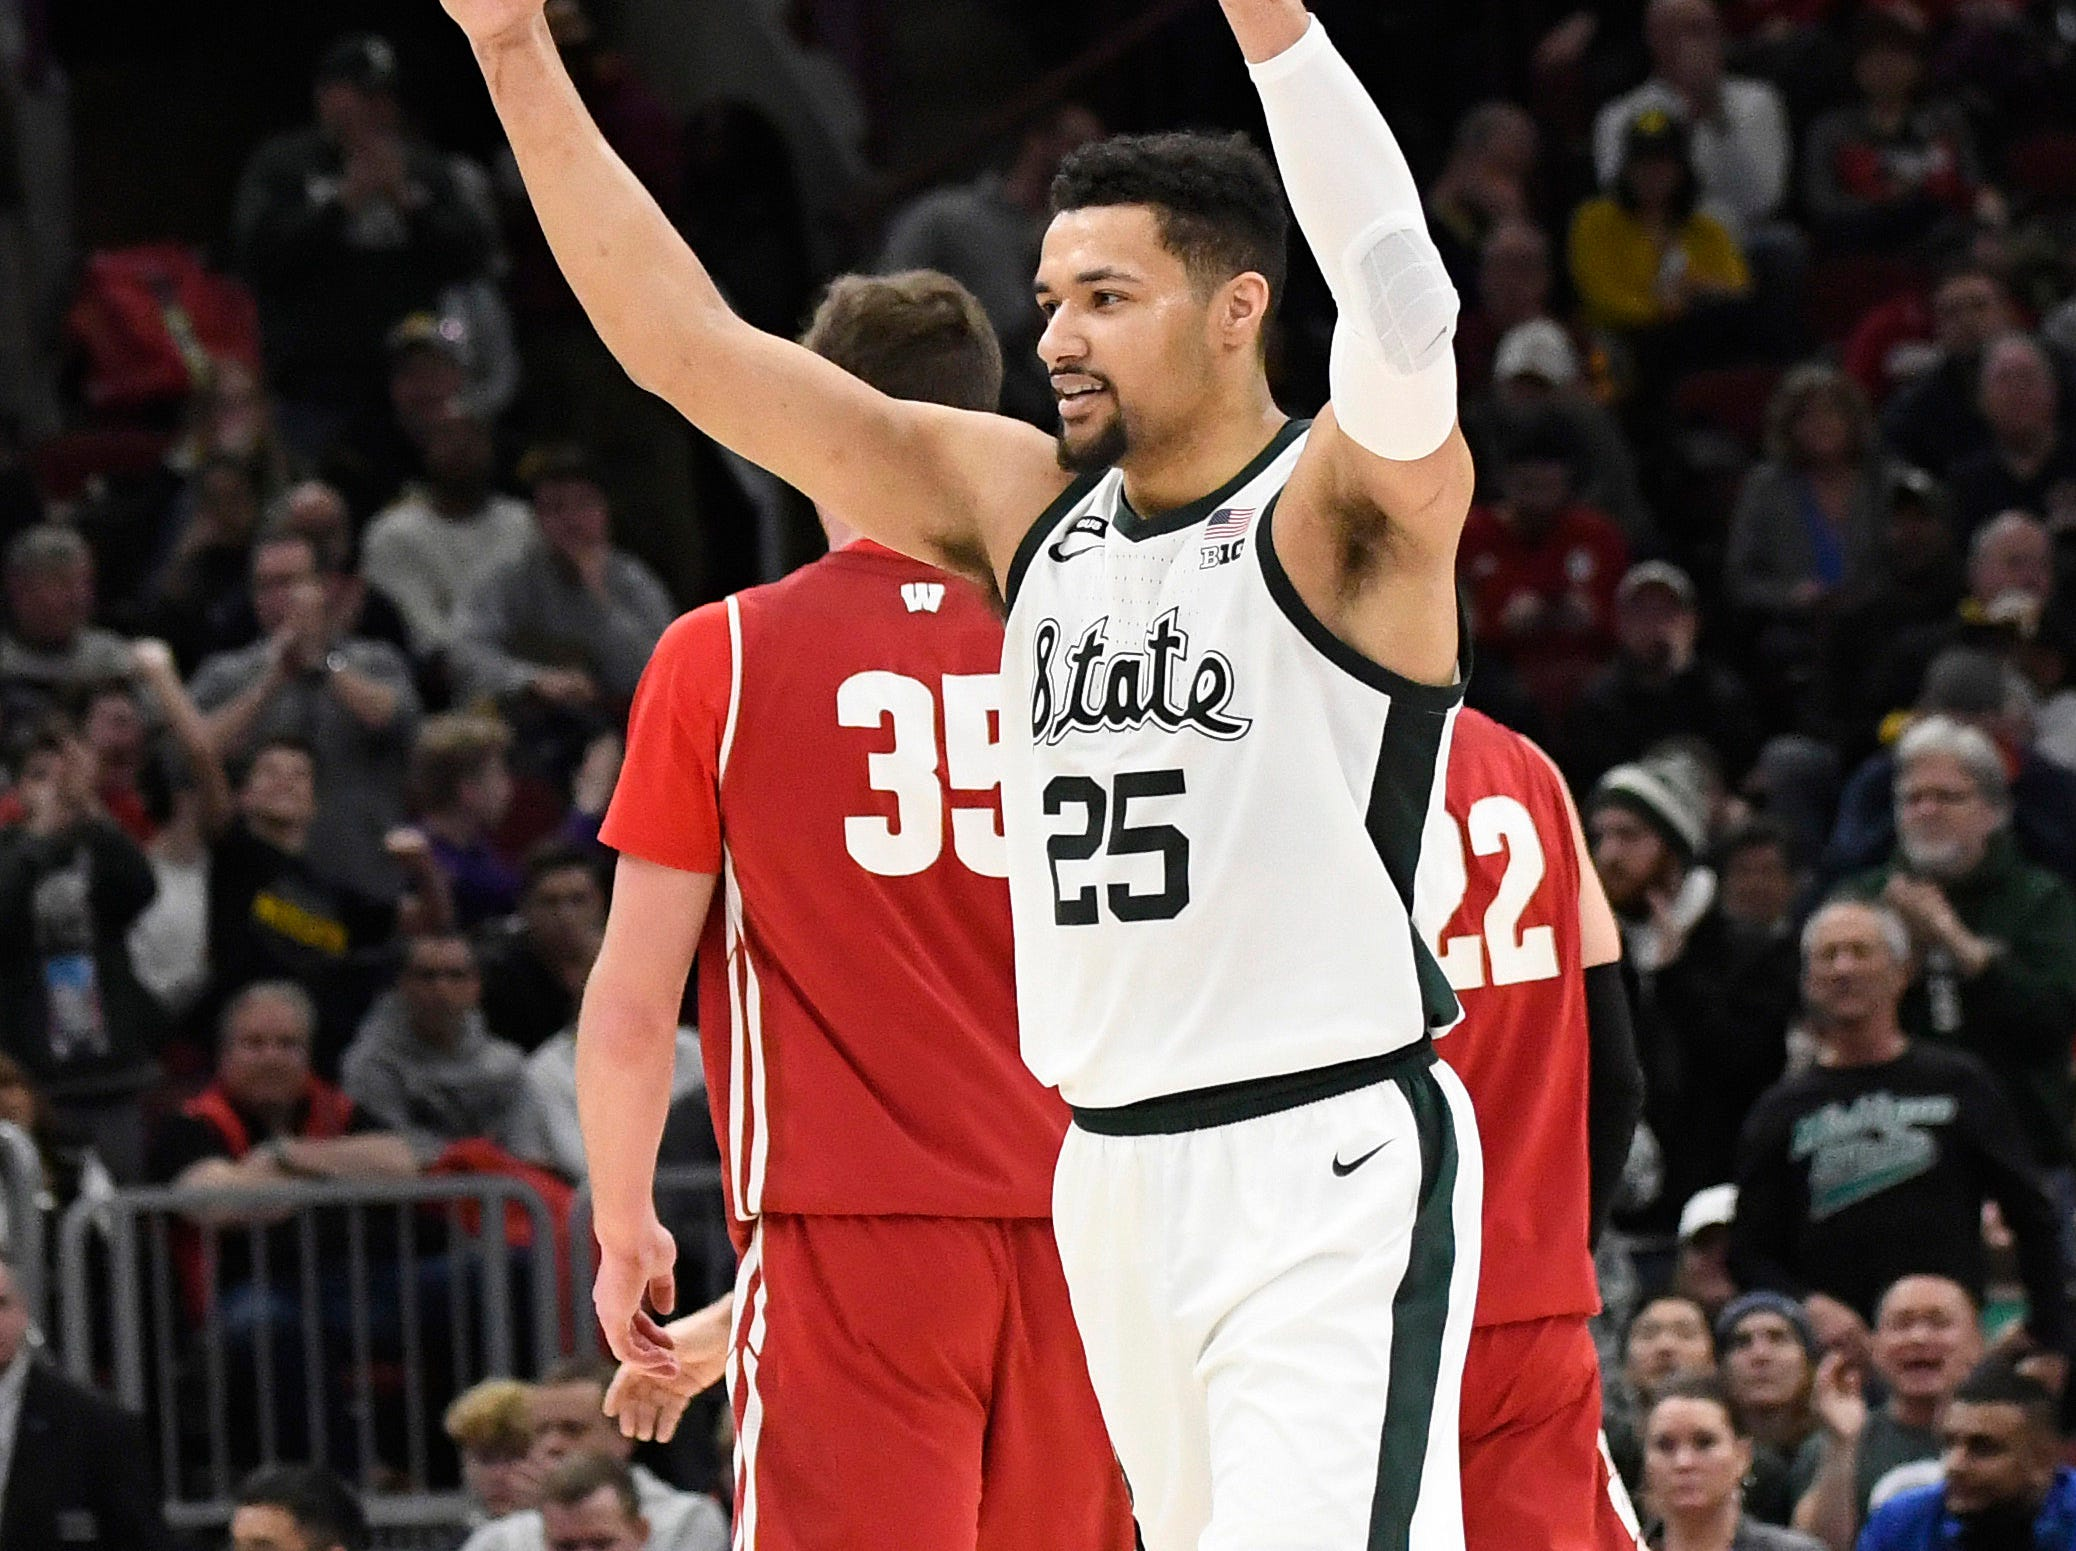 Michigan State Spartans forward Kenny Goins (25) reacts after a play against the Wisconsin Badgers during the second half in the Big Ten conference tournament at United Center.